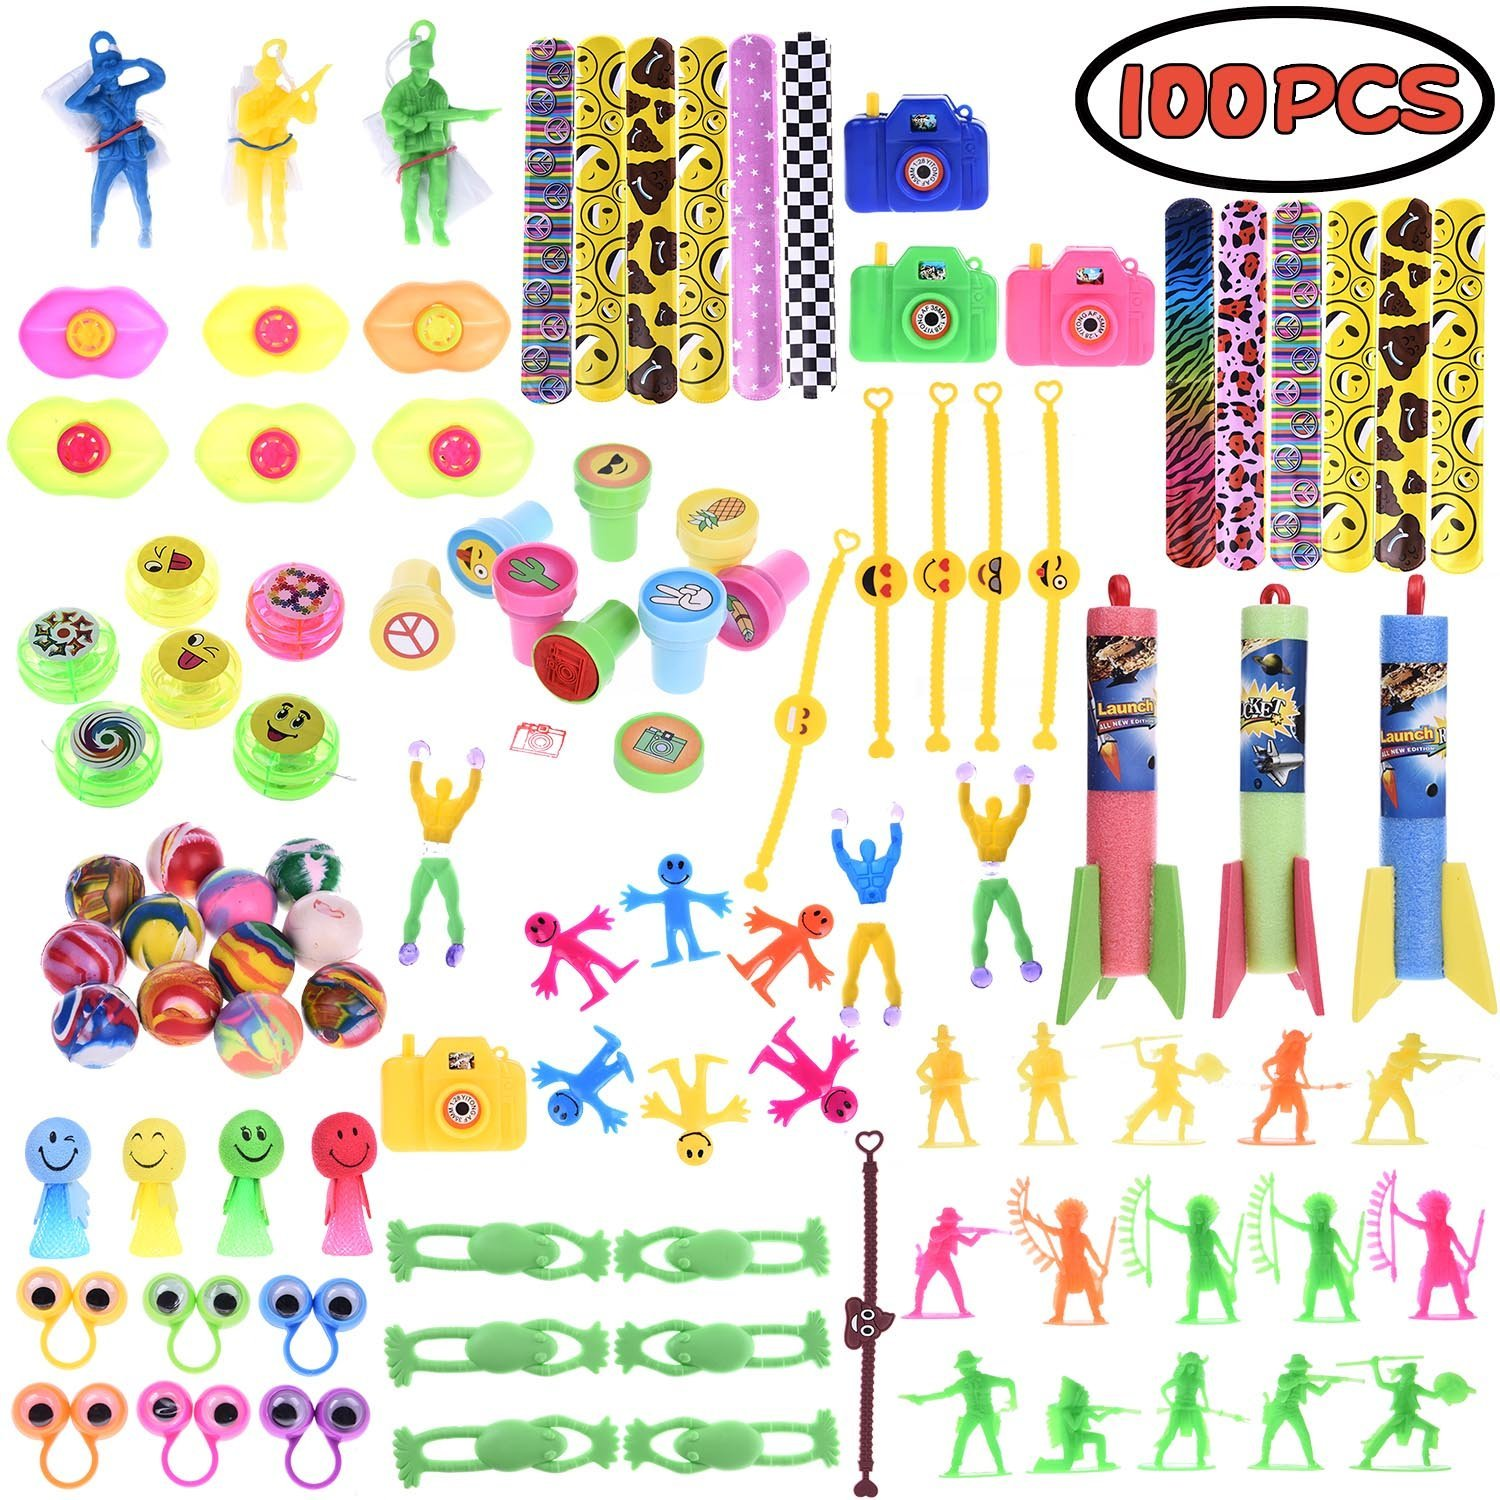 Assorted Giveaway Toys for Party Favor Boxes for Kids, Pinata Filler Toy,Party Supply,Slap Bracelets, Mini Cameras,Stamps,Yo-Yos,Wall Climbing for Easter Egg Fillers,Goodie Bags for Birthday F-170